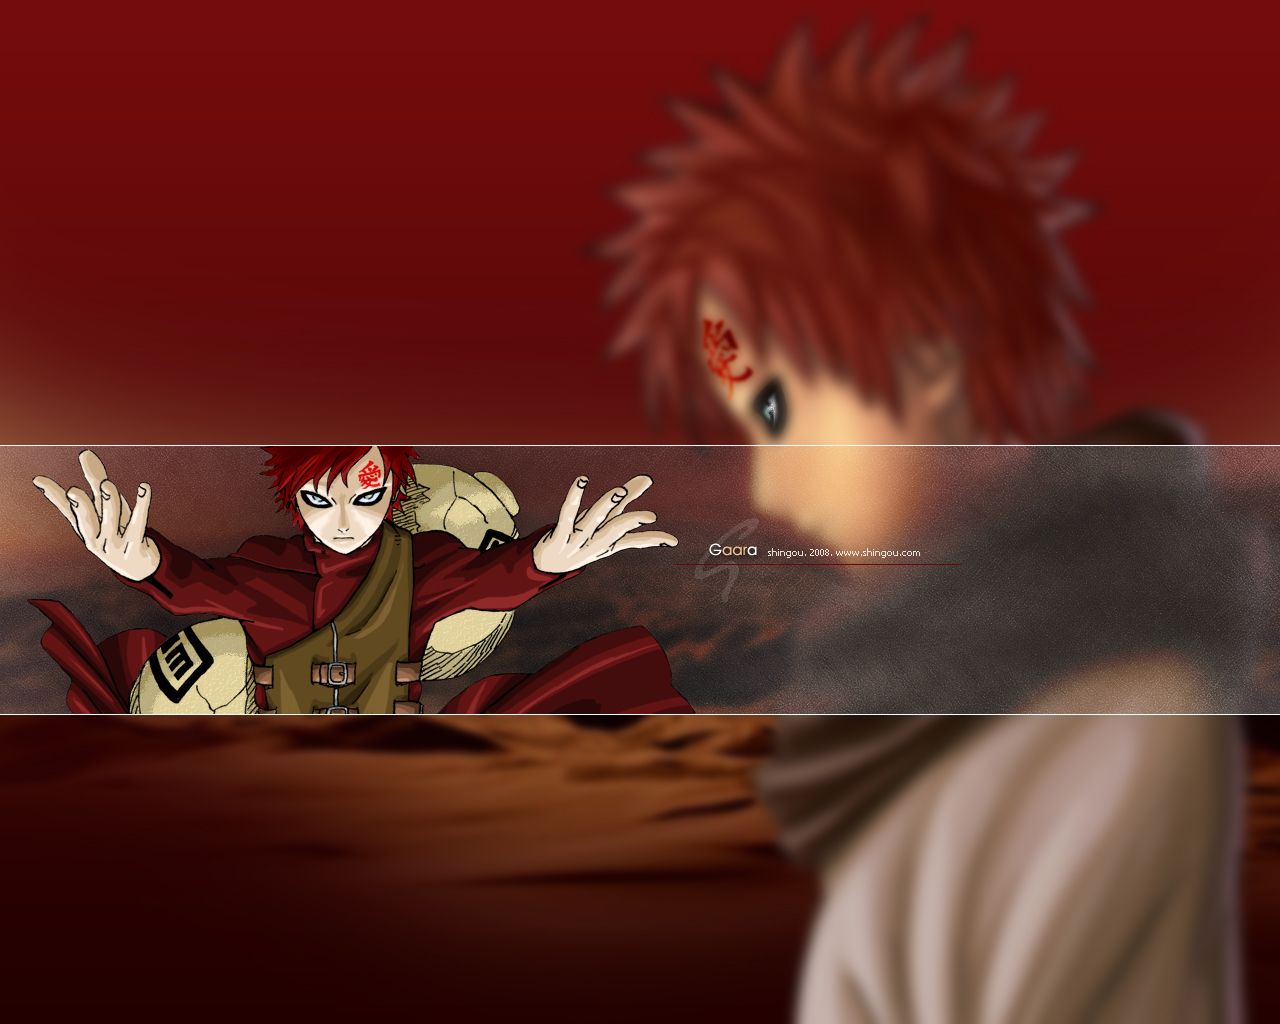 Gaara Kazekage Wallpapers New Stylish Wallpaper 1280x1024